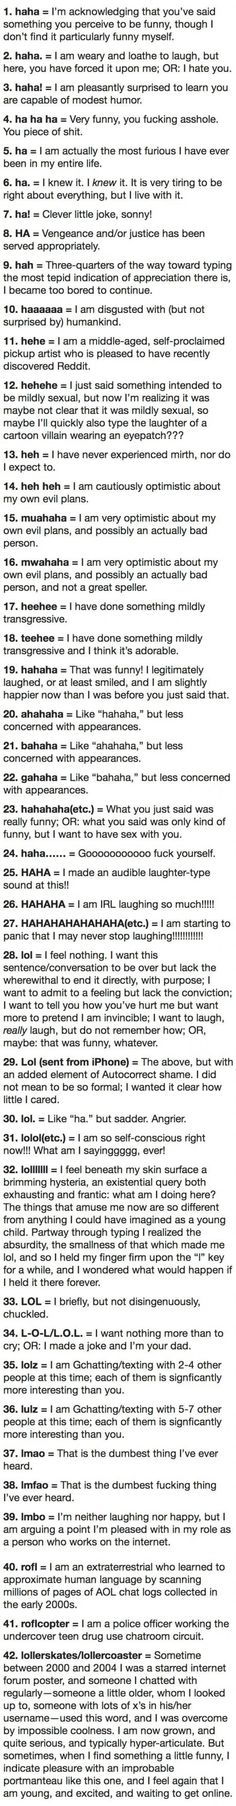 The anatomy of a laugh.